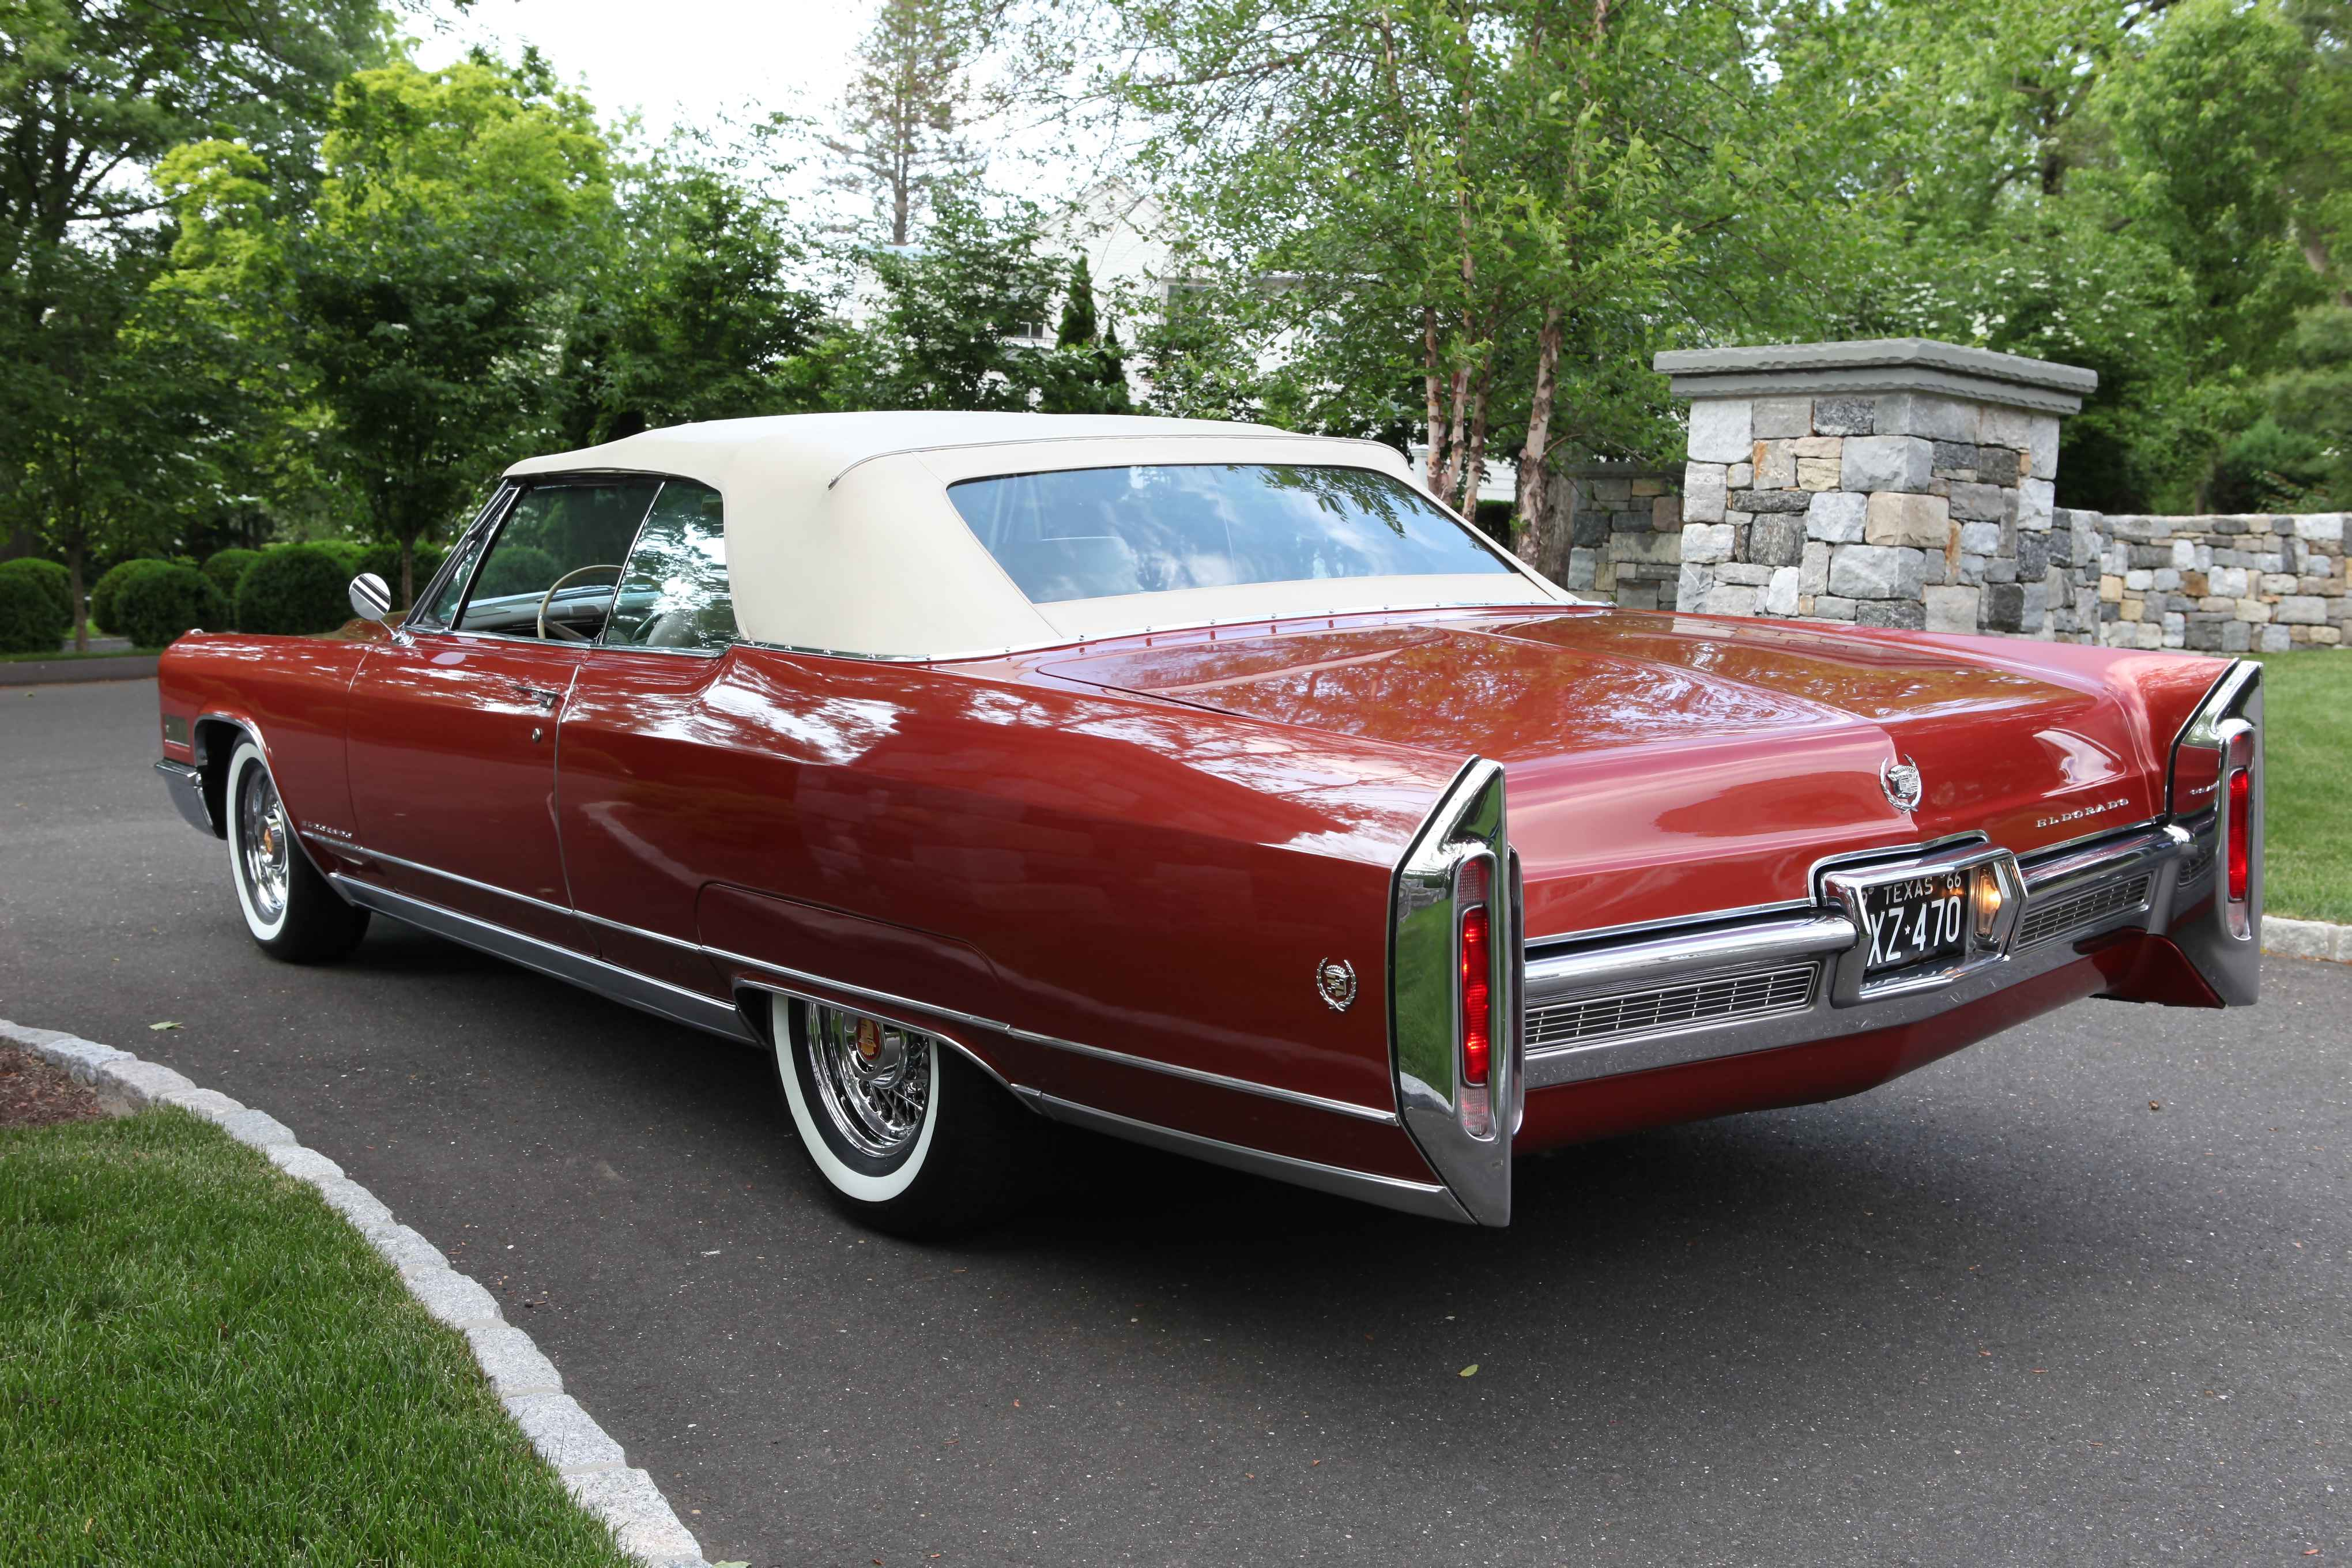 1956 cadillac interior related keywords amp suggestions - 1960 Cadillac Eldorado Biarritz Mjc Classic Cars Pristine Classic Cars For Sale Locator Service Classic Cars Pinterest Cadillac Eldorado